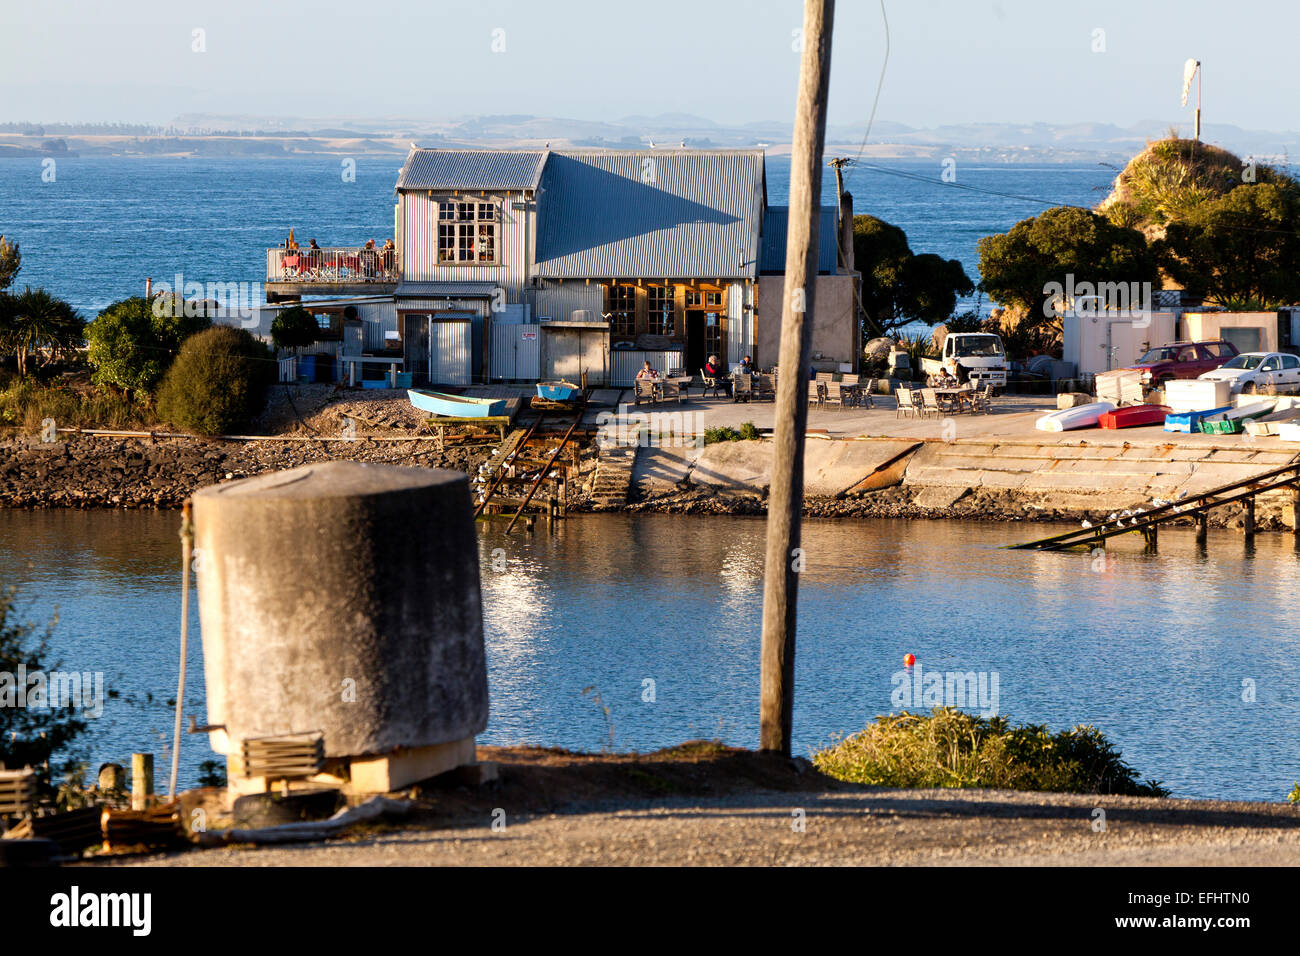 Fleurs Place, well-known fish restaurant with corrugated iron architecture, Moeraki, Otago, South Island, New Zealand - Stock Image